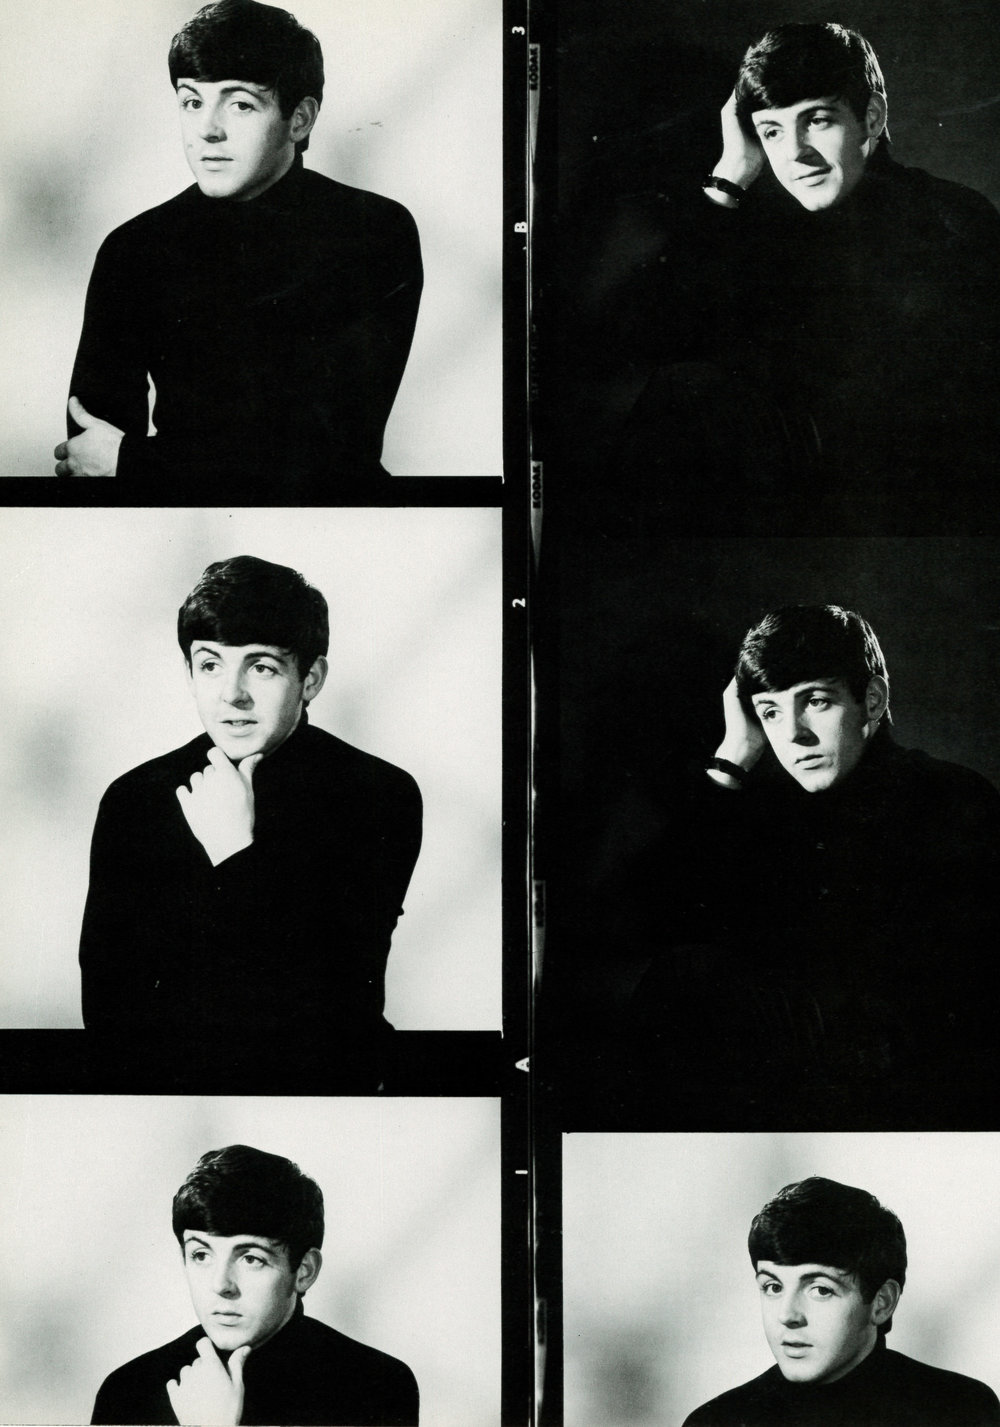 Paul McCartney 1963 - photos by Dezo Hoffman.